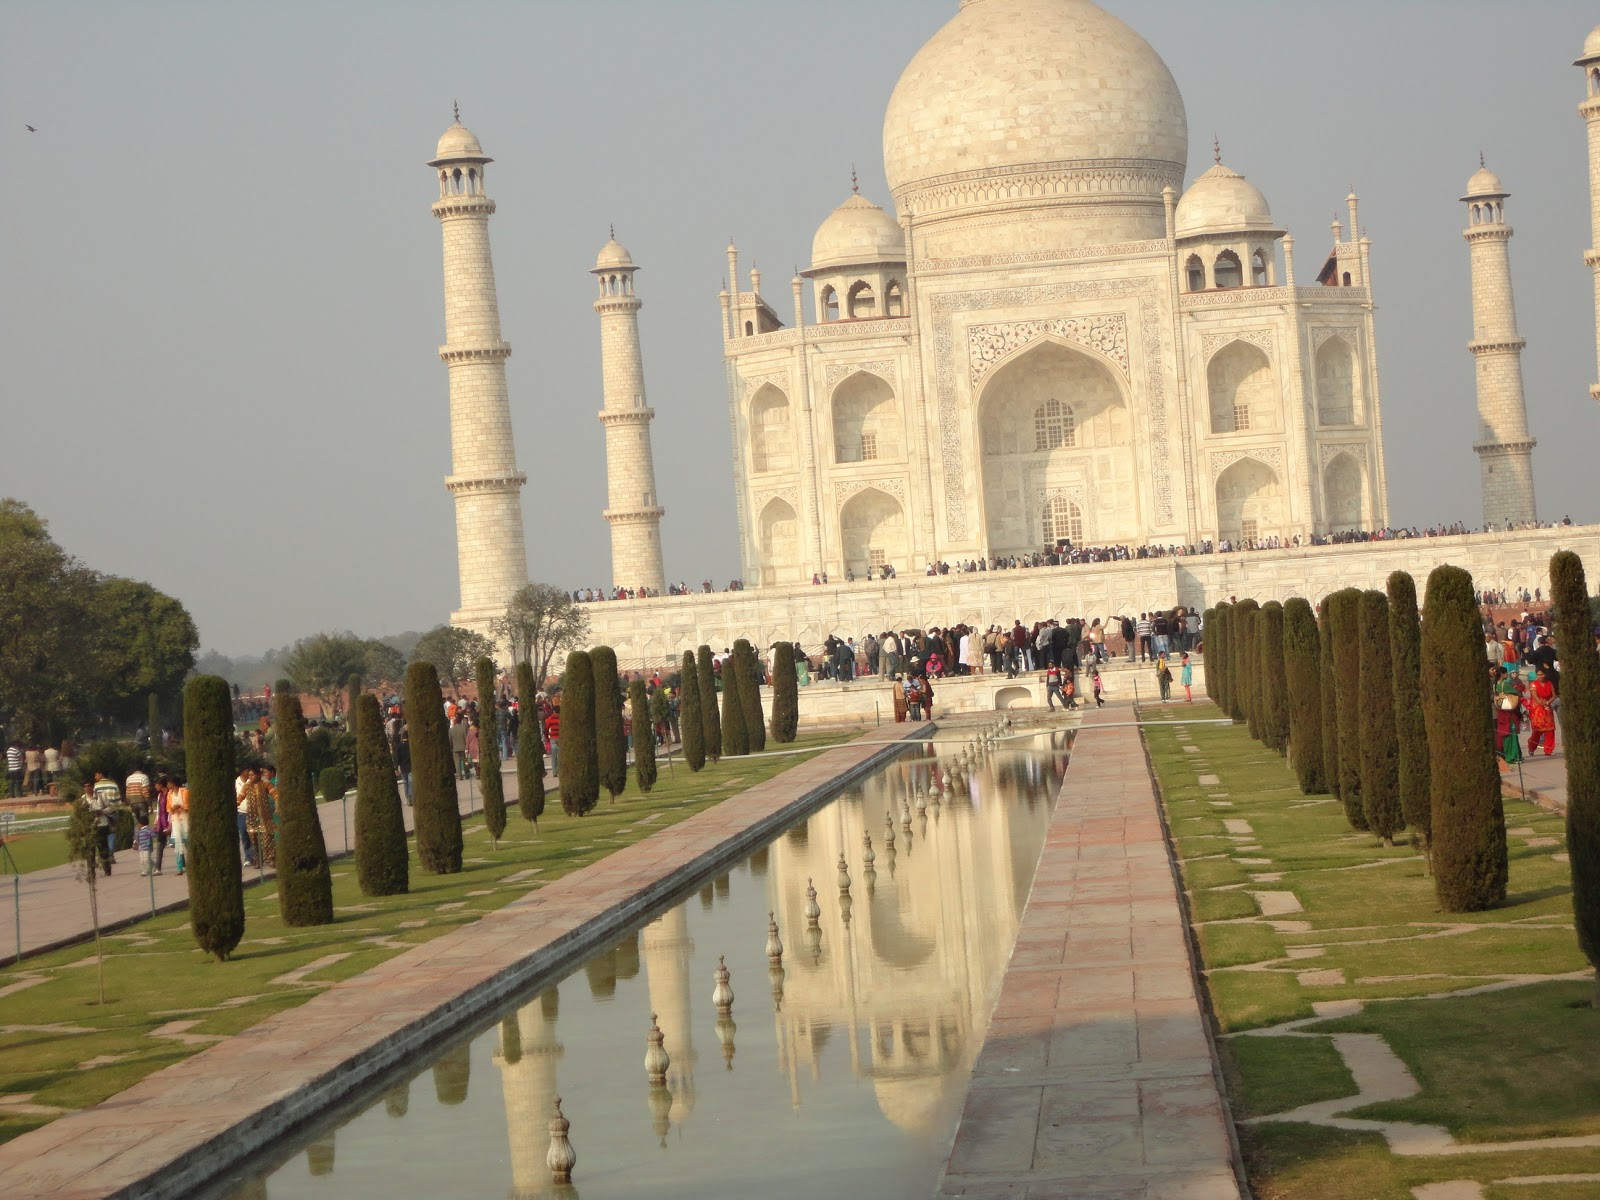 The Fountains of The Taj Mahal